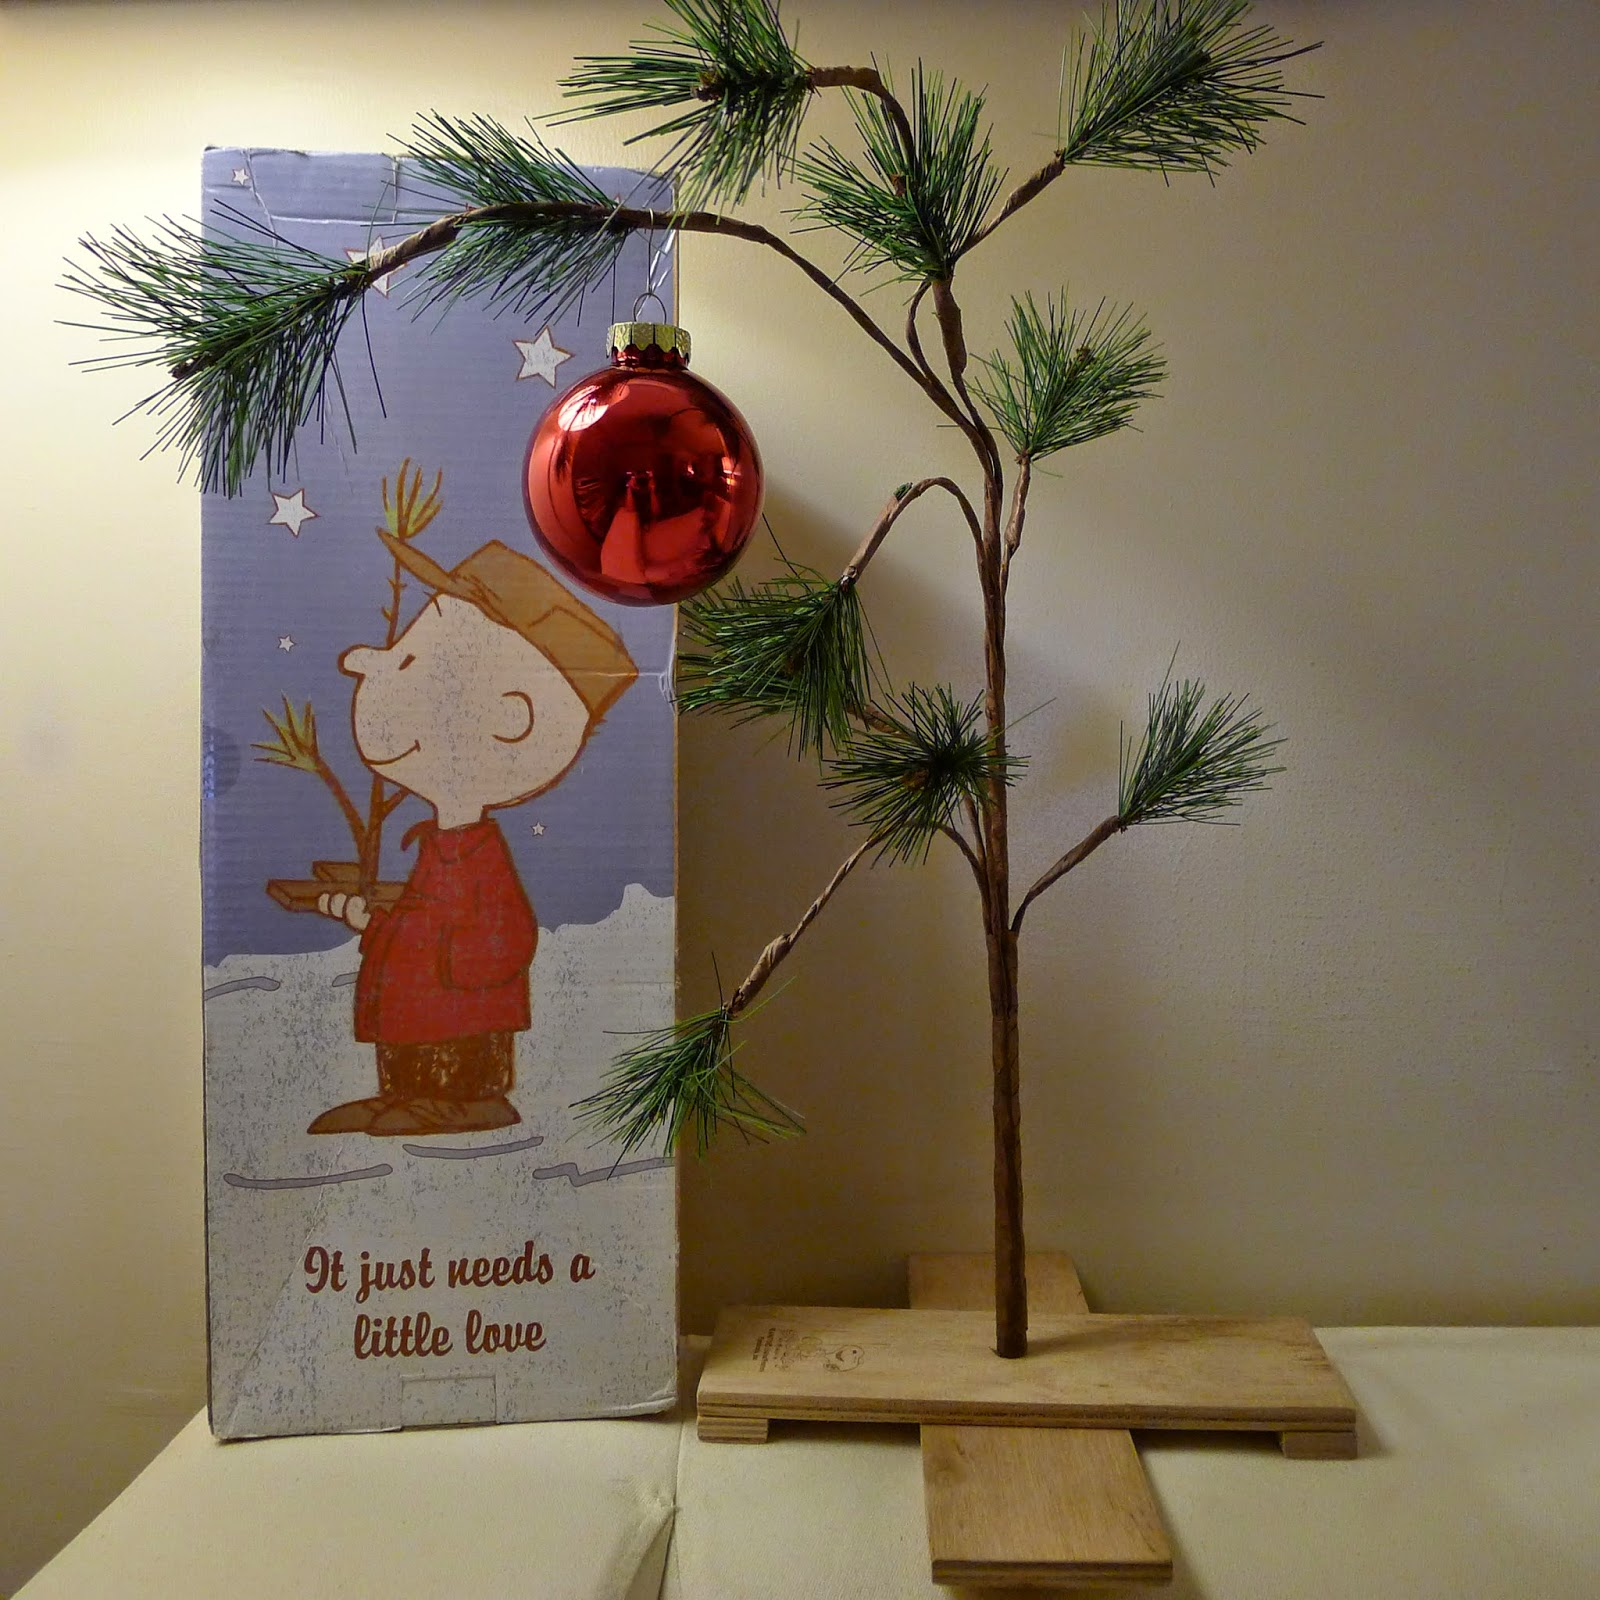 but among all the christmas cds that we have there is one cd thats always on repeat mode and its a charlie brown christmas by the vince guaraldi